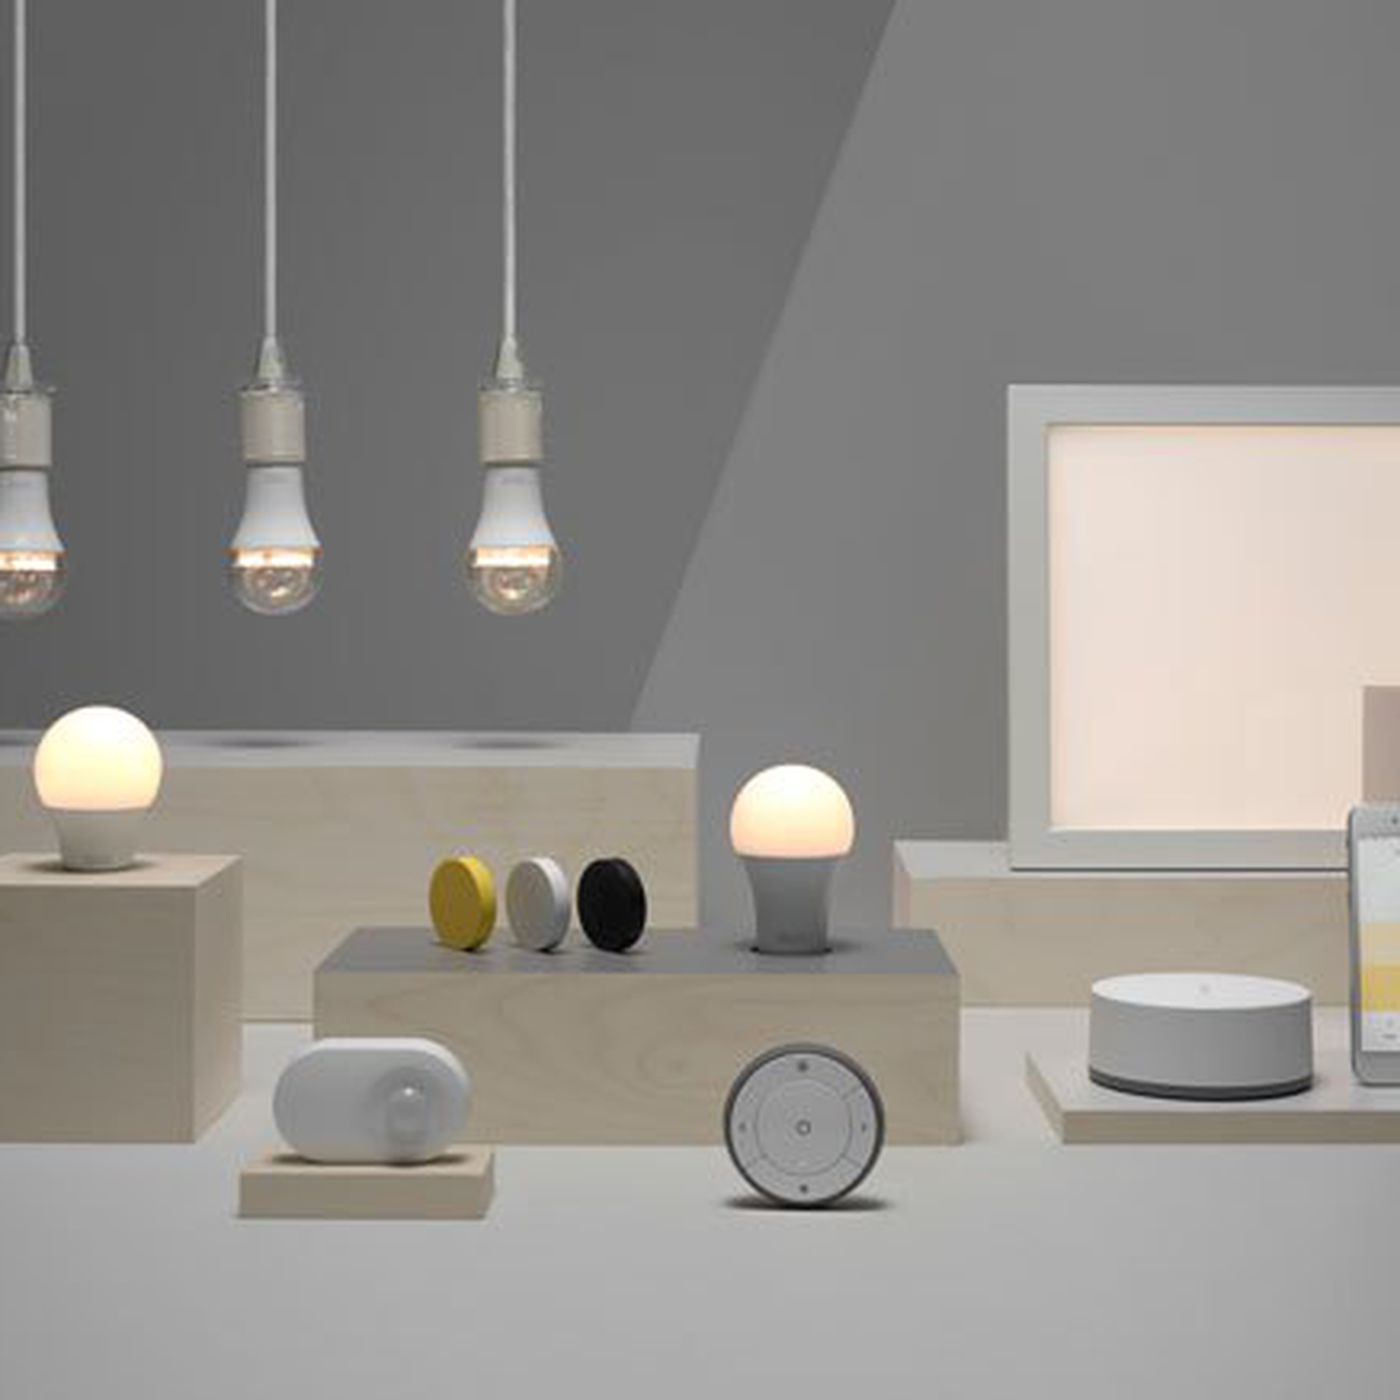 Best smart light bulbs and kits - Curbed